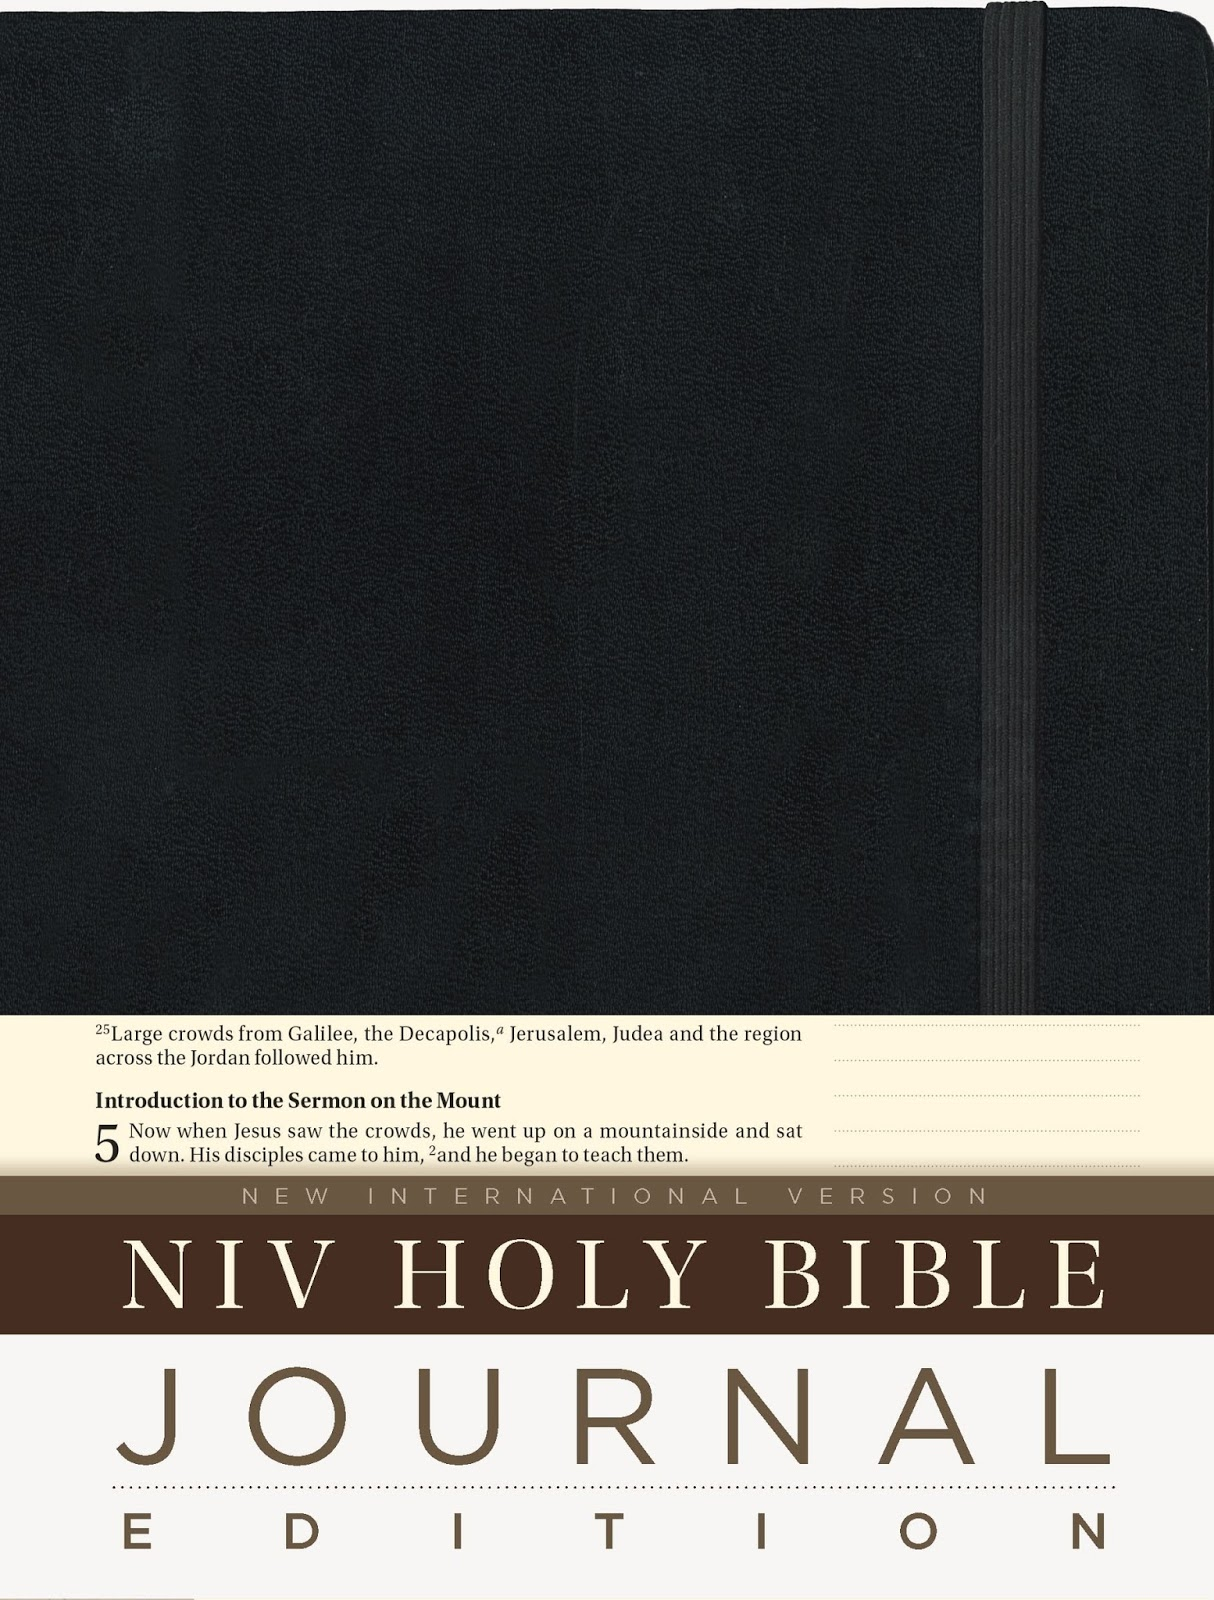 Vintage Leather Look Jeremiah Verse Bible Book Cover Large: Ink Blots By TRD: Book Review :: NIV Holy Bible, Journal